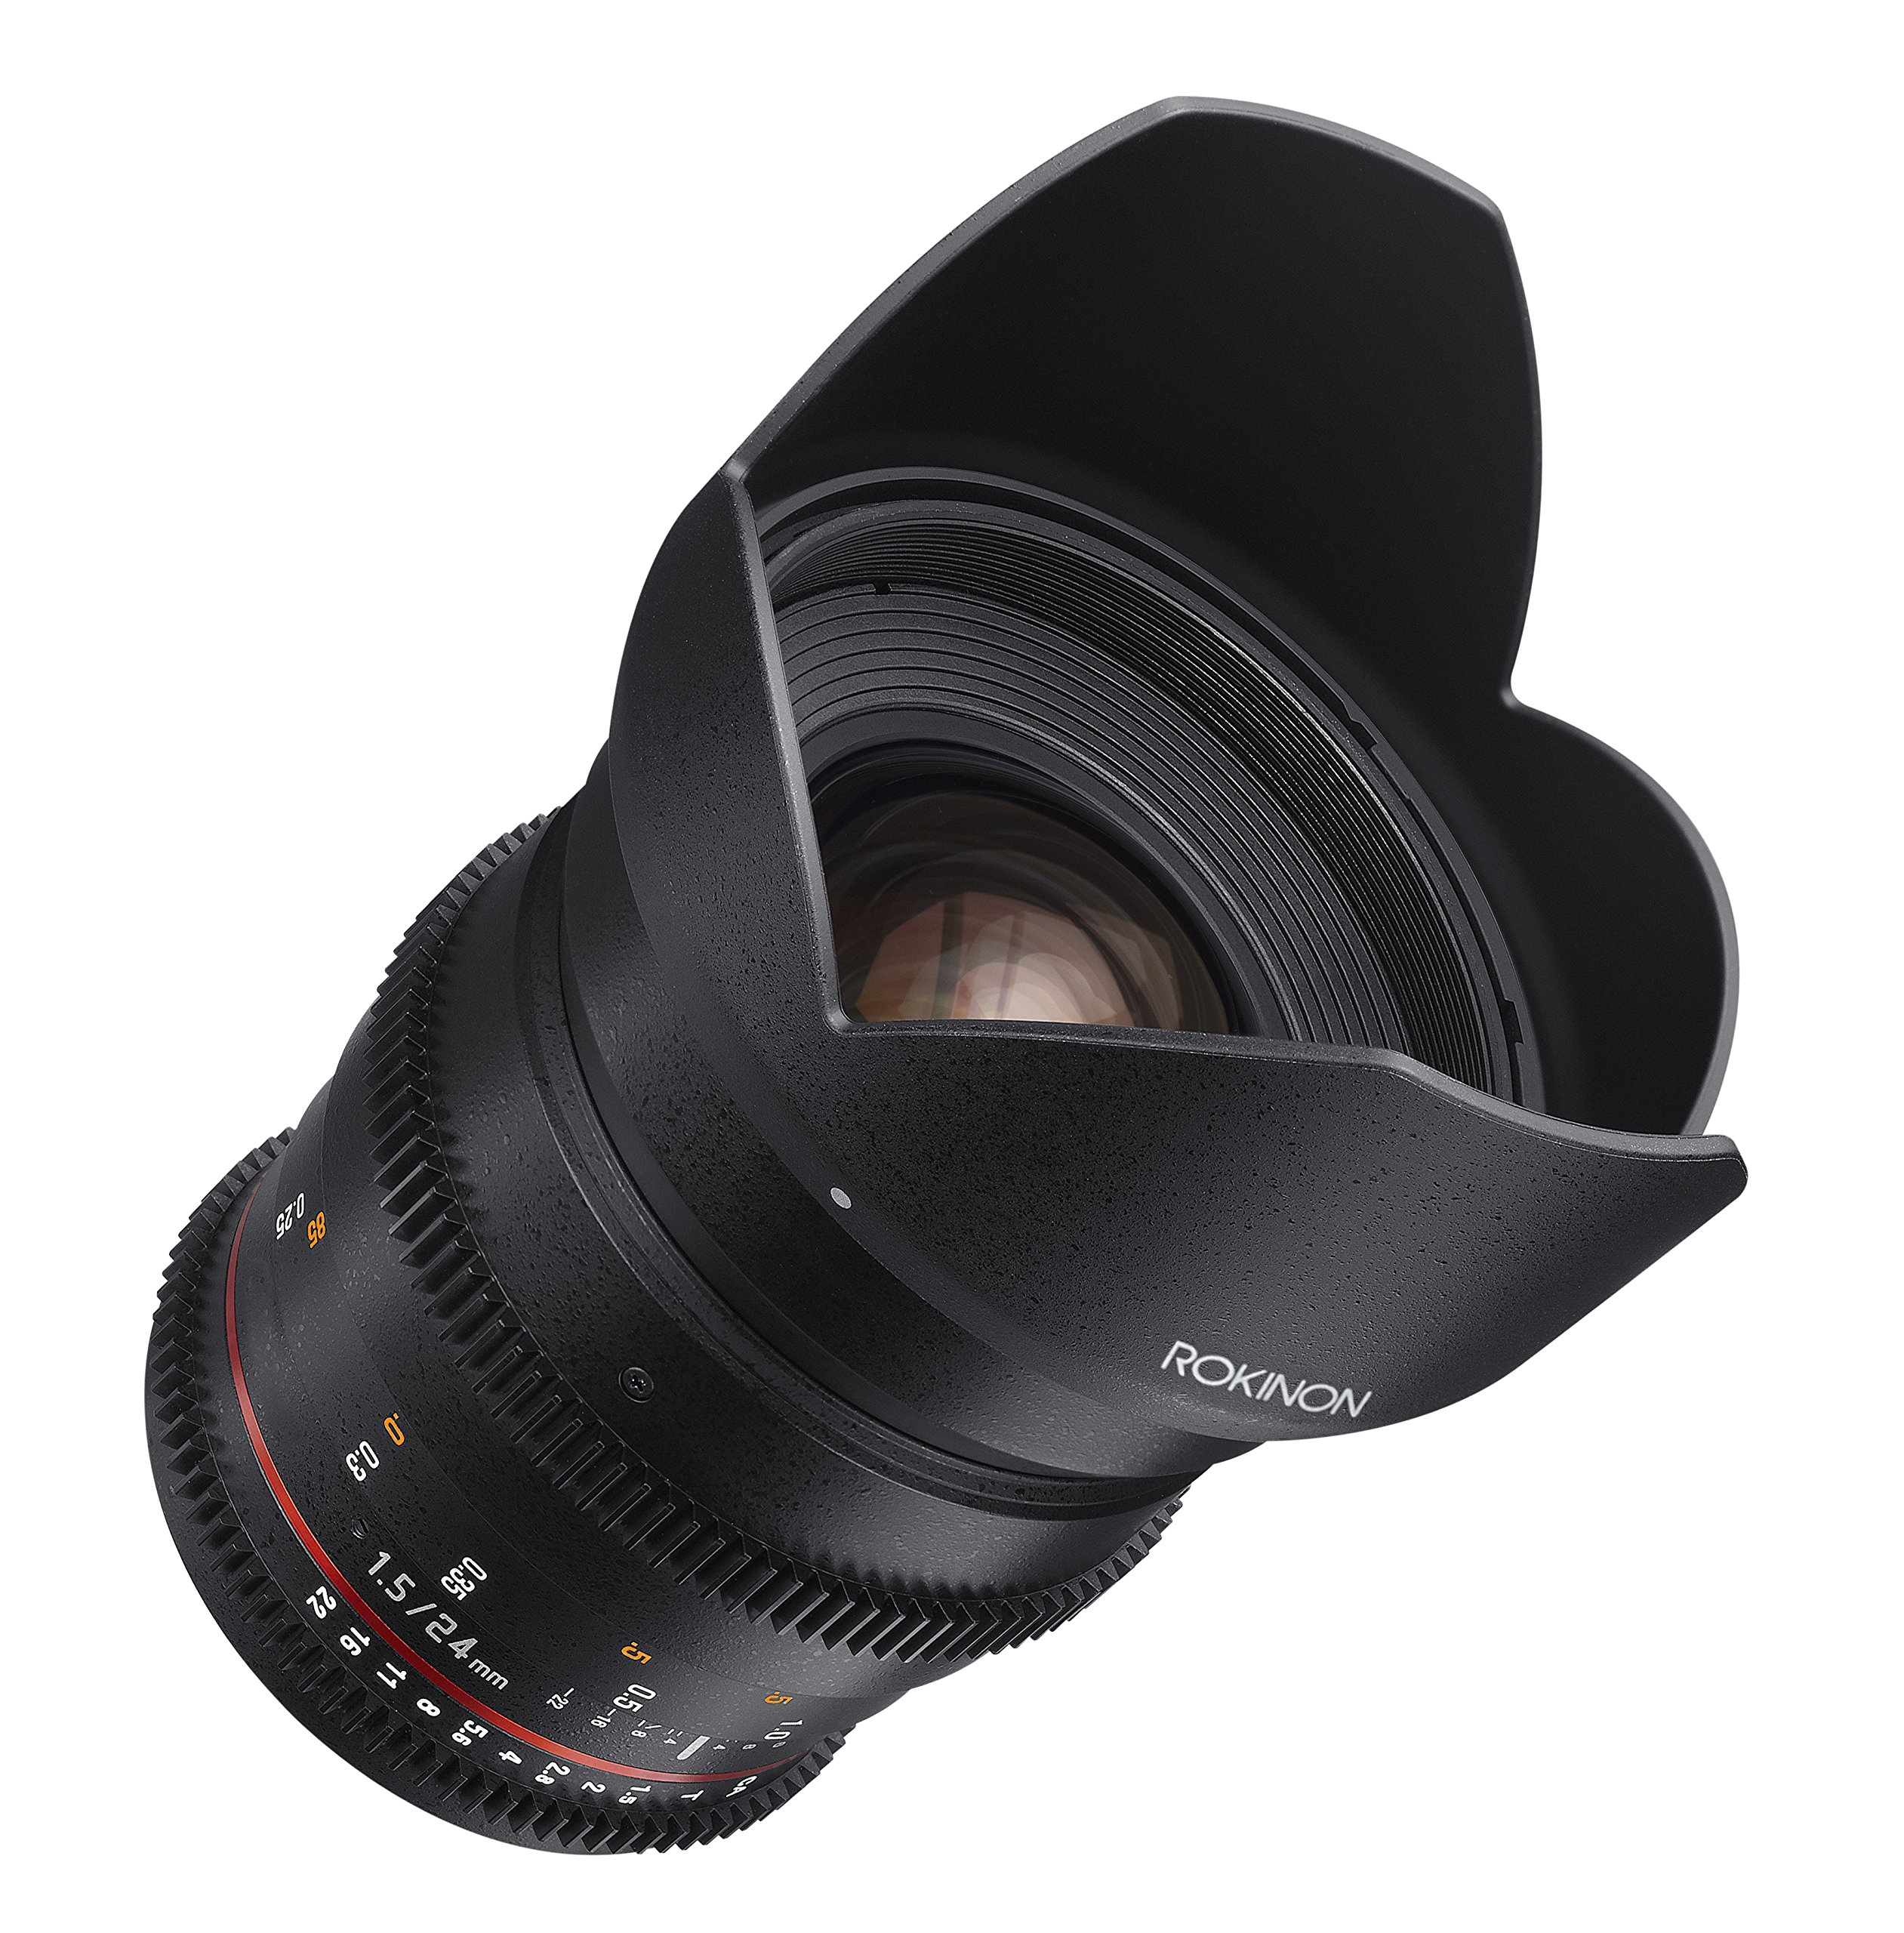 ROKINON 24mm T1.5/f1.4 Cine Wide-Angle Lens for Micro 4/3 Cameras